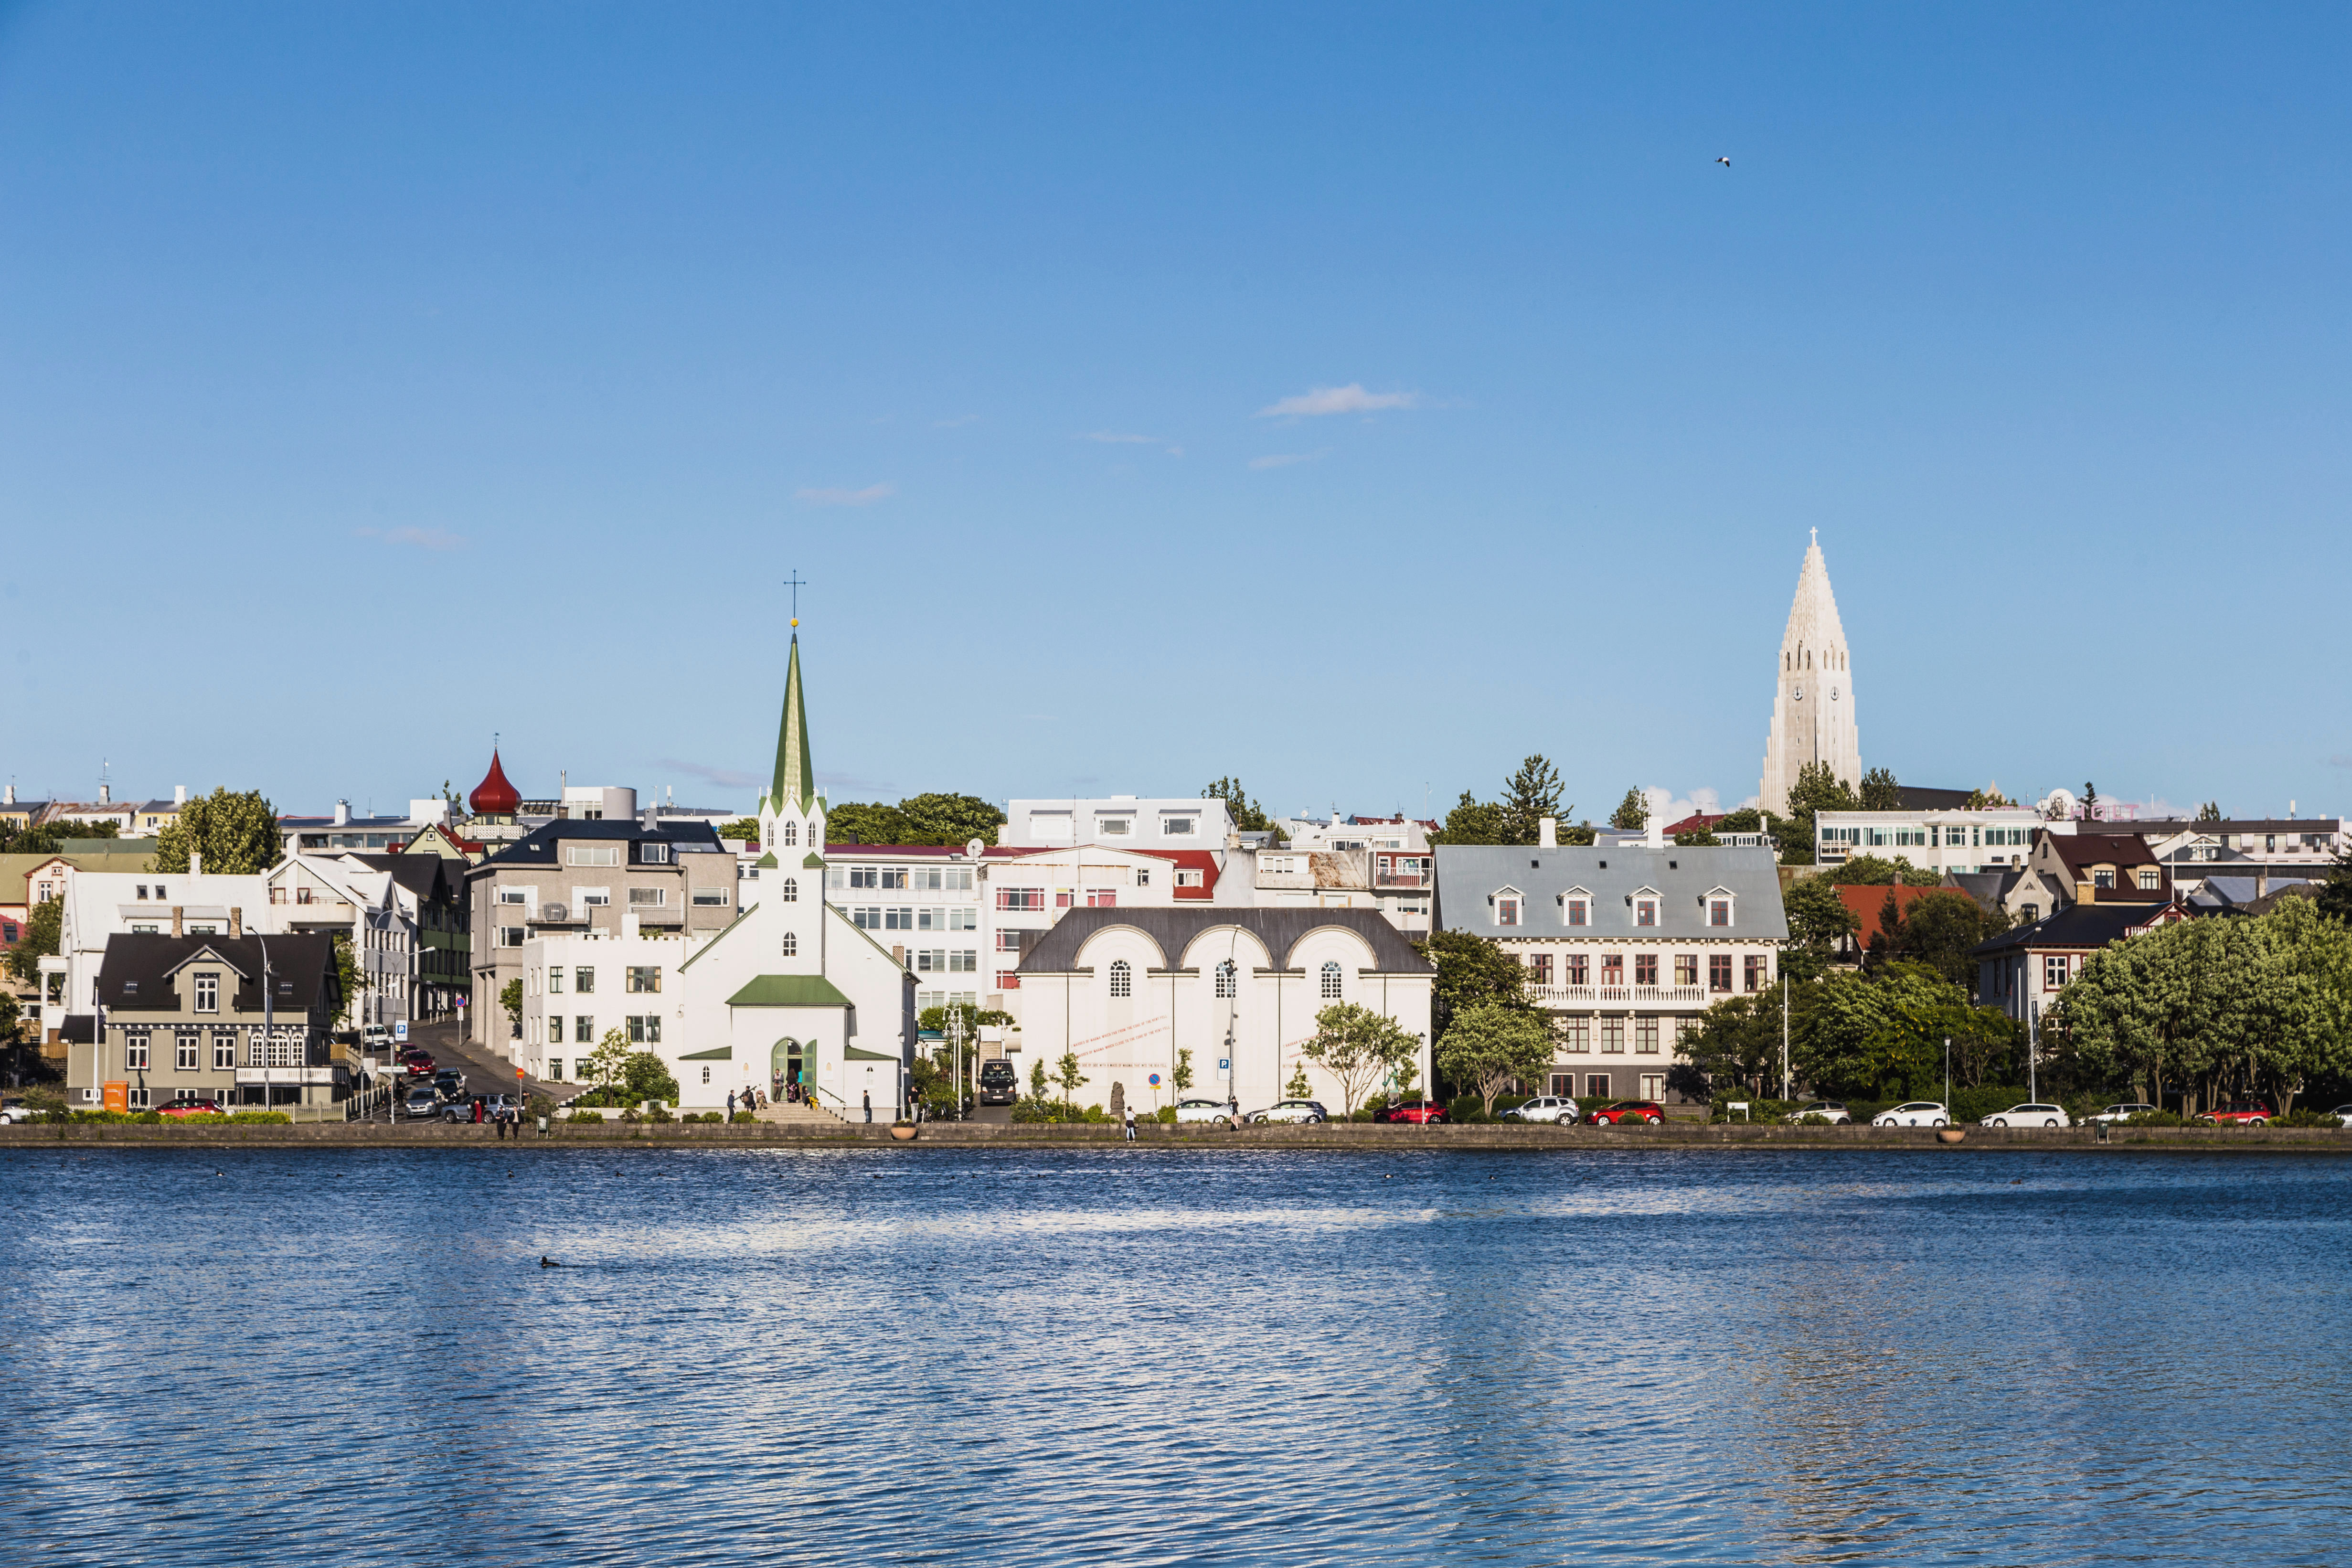 Reykjavik cityscape, with the bell tower of the Hallgrimskirkja church, viewed from across the Tjornin lake in the heart of Iceland capital city on a